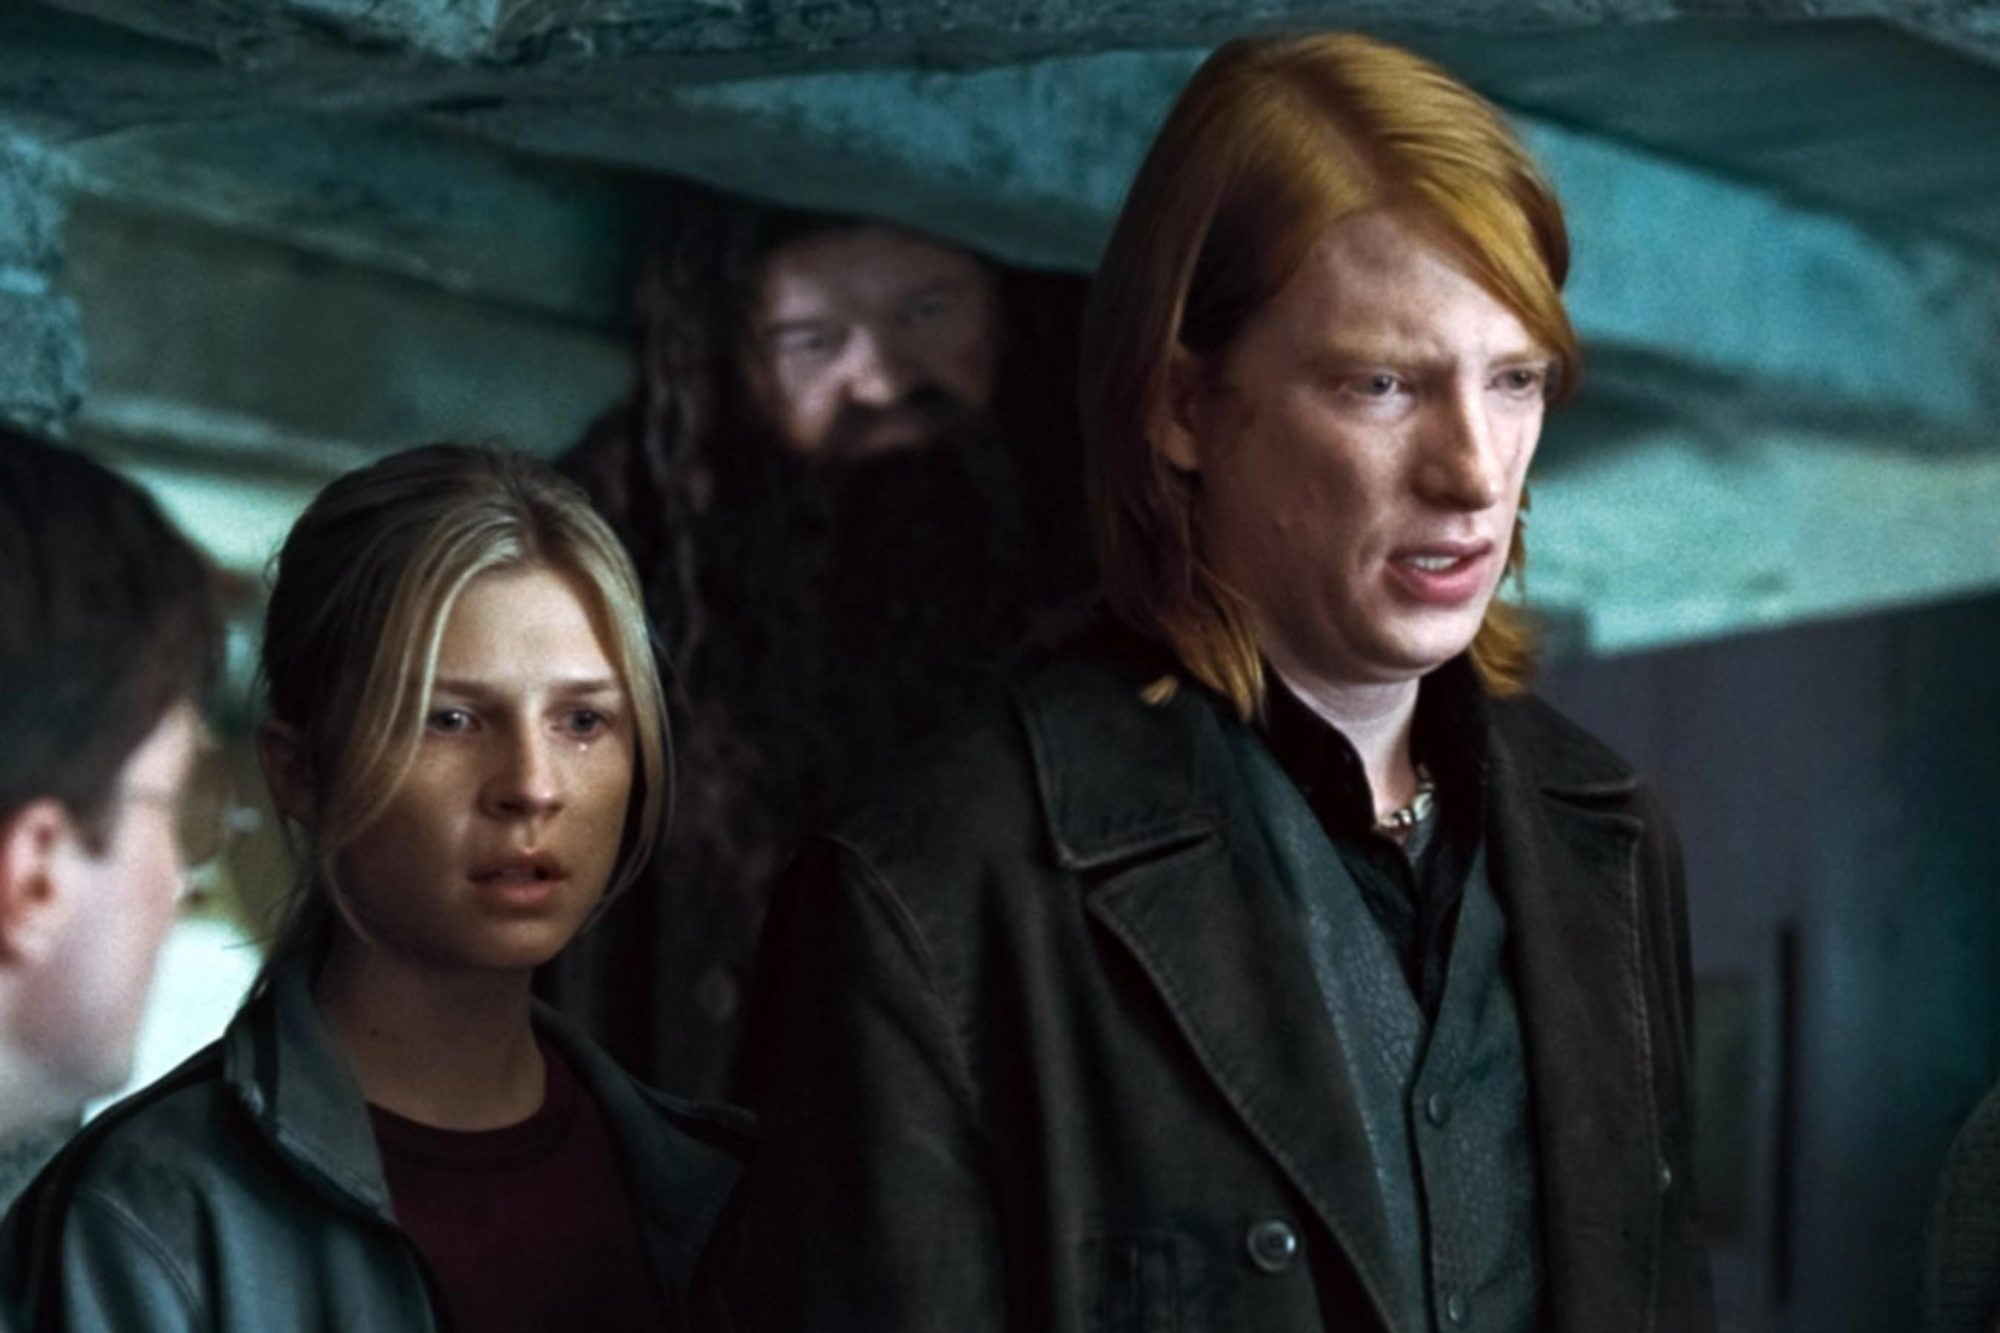 HARRY POTTER AND THE DEATHLY HALLOWS: PART 1, from left: Clemence Poesy, Robbie Coltrane, Domhnall G